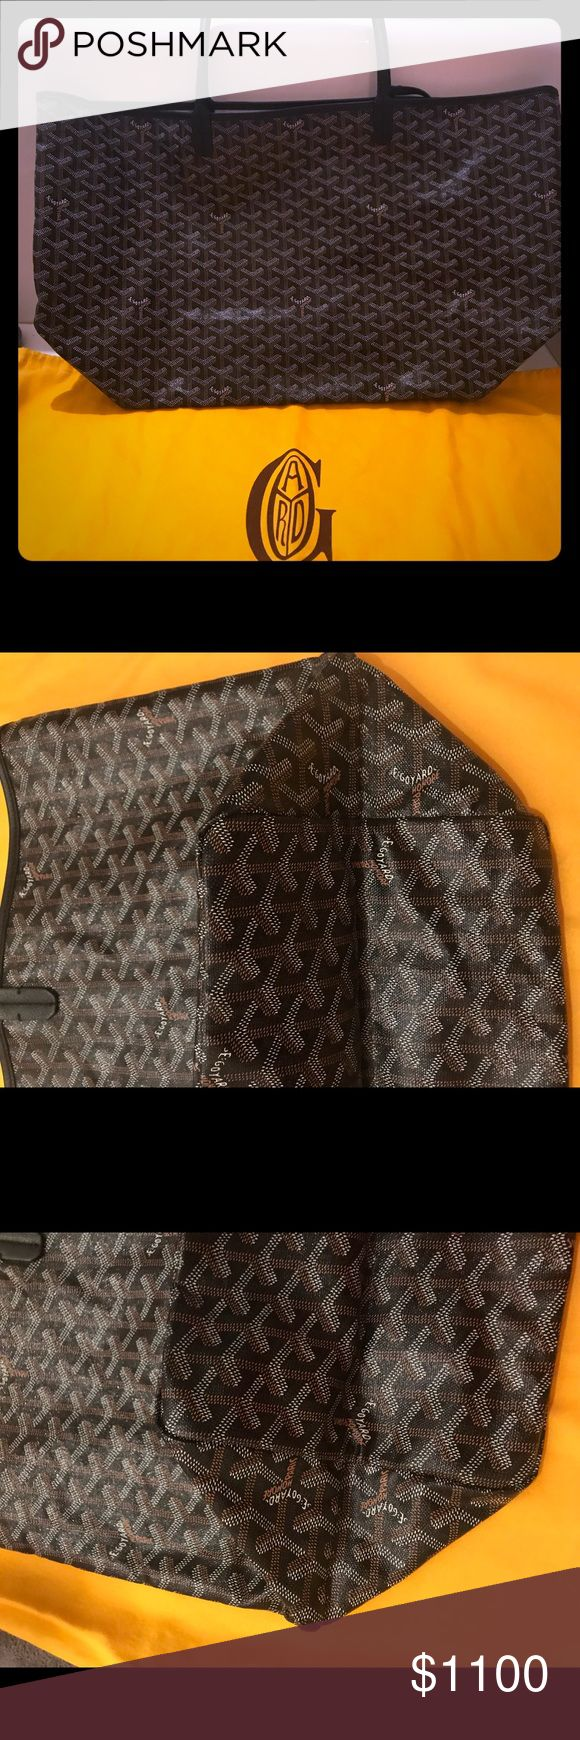 Goyard Saint Louis GM New with tags! Comes with dust bag and Barneys store bag! I paid New York tax on this bag! Goyard Bags Totes